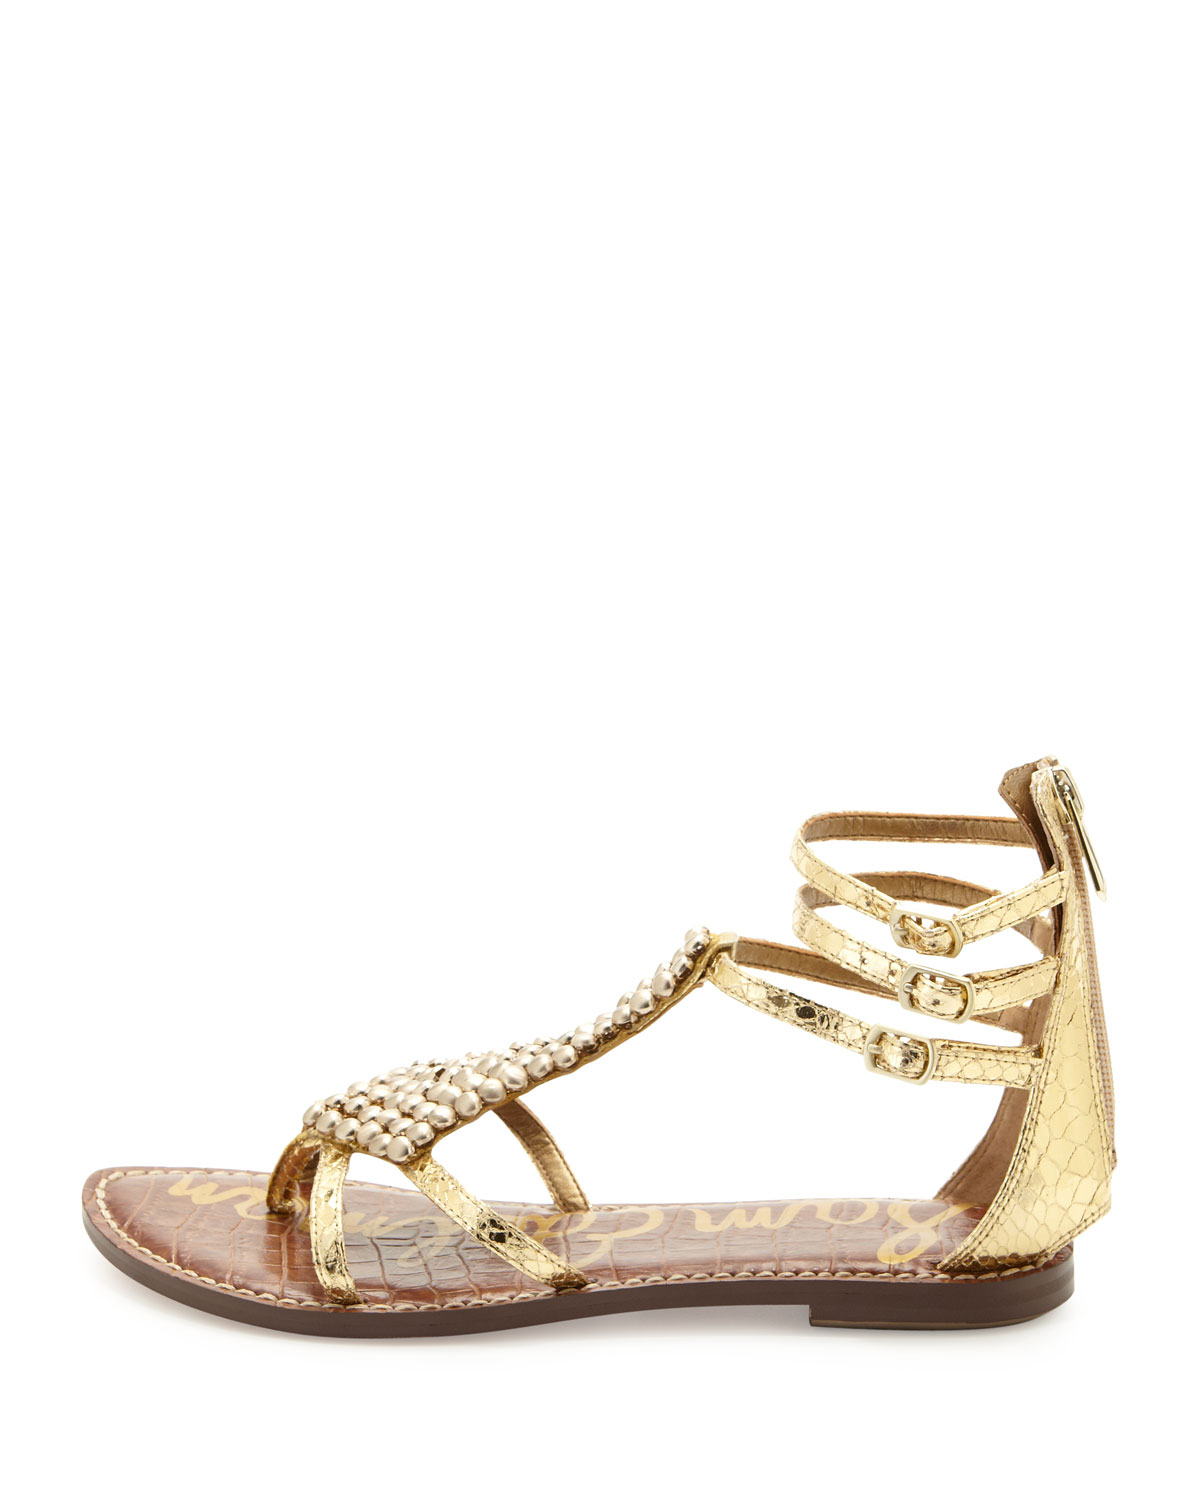 c4bffb0317d Lyst - Sam Edelman Ginger Beaded Metallic Gladiator Sandal in Metallic